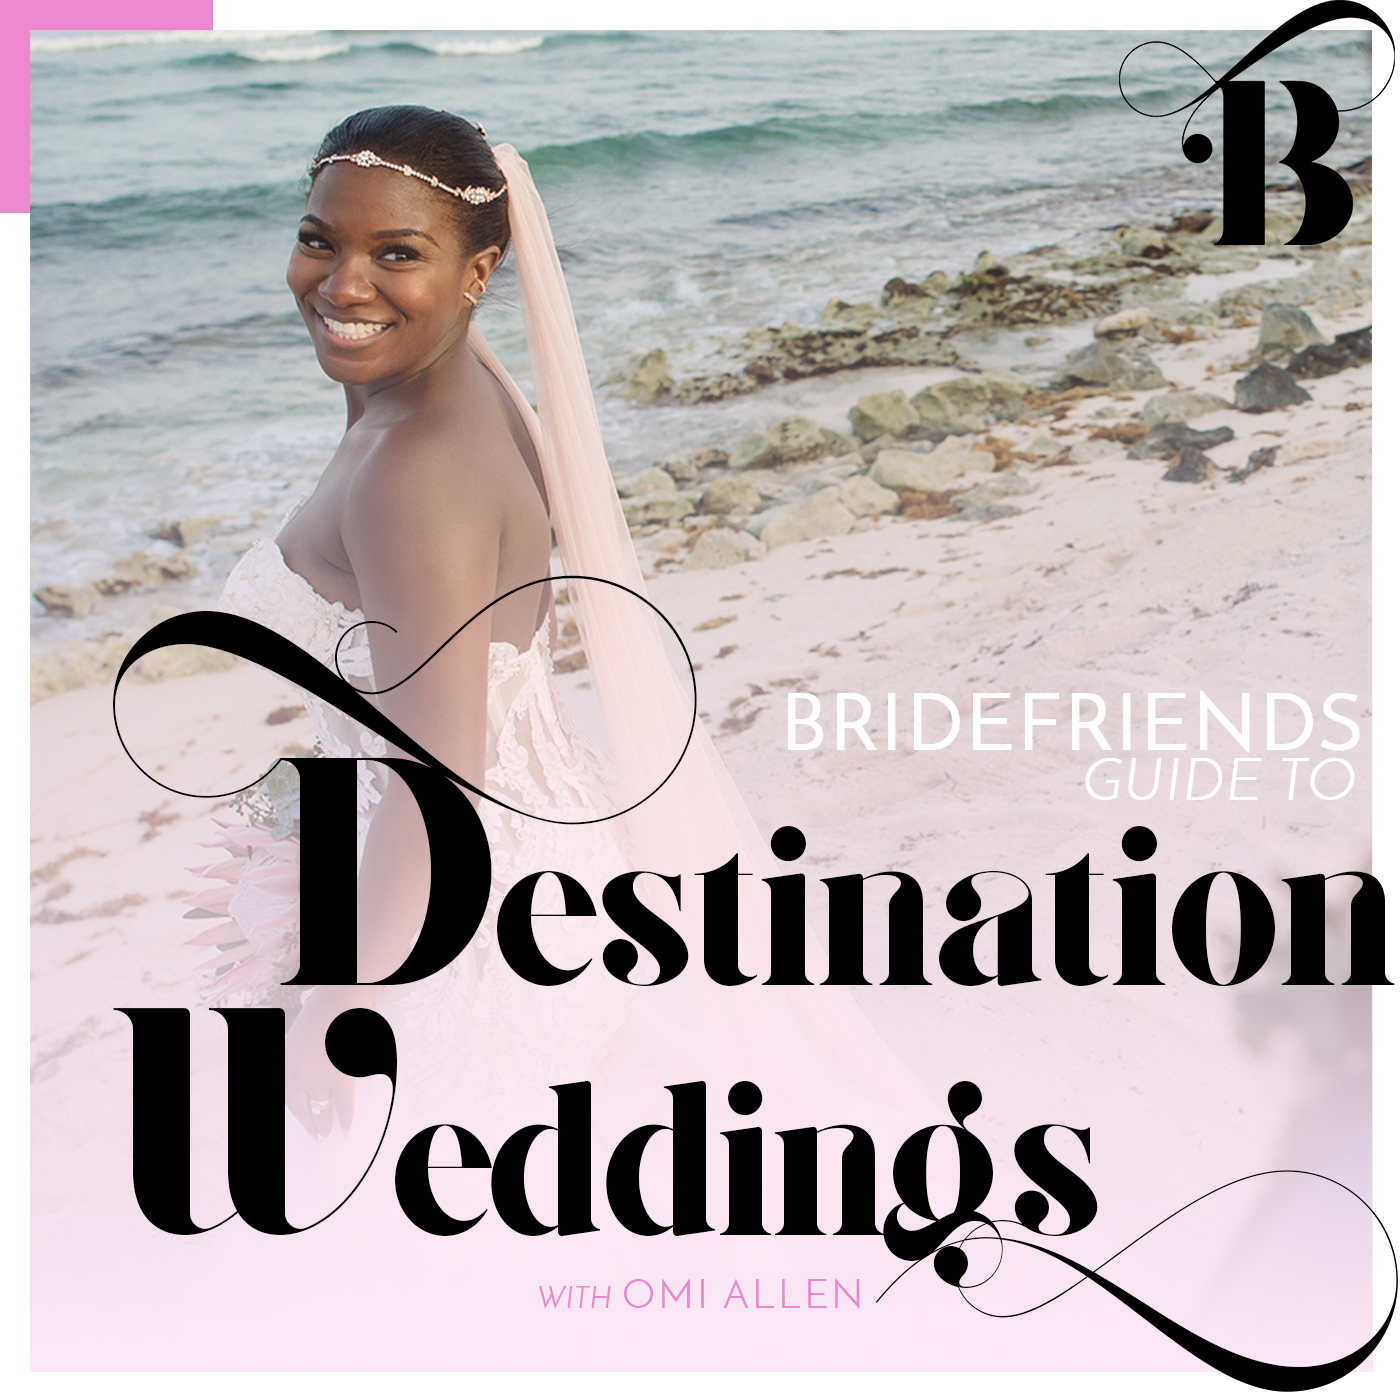 1400x1400-itunes-artwork-bridefriends-guide-to-destination-weddings-podcast-with-omi-allen-cover-final-transparent.png